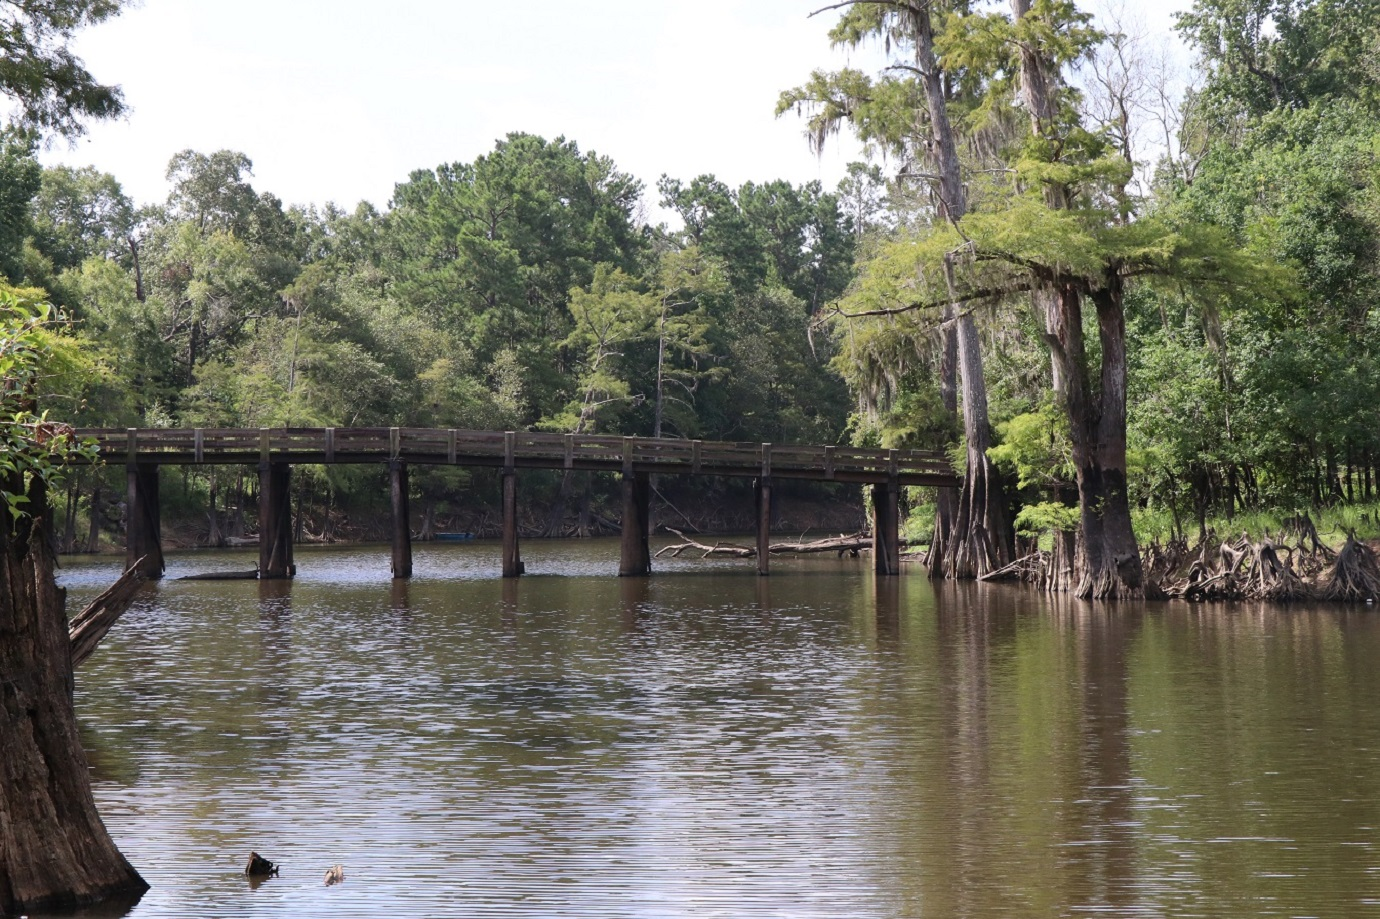 Alligator Park Bridge